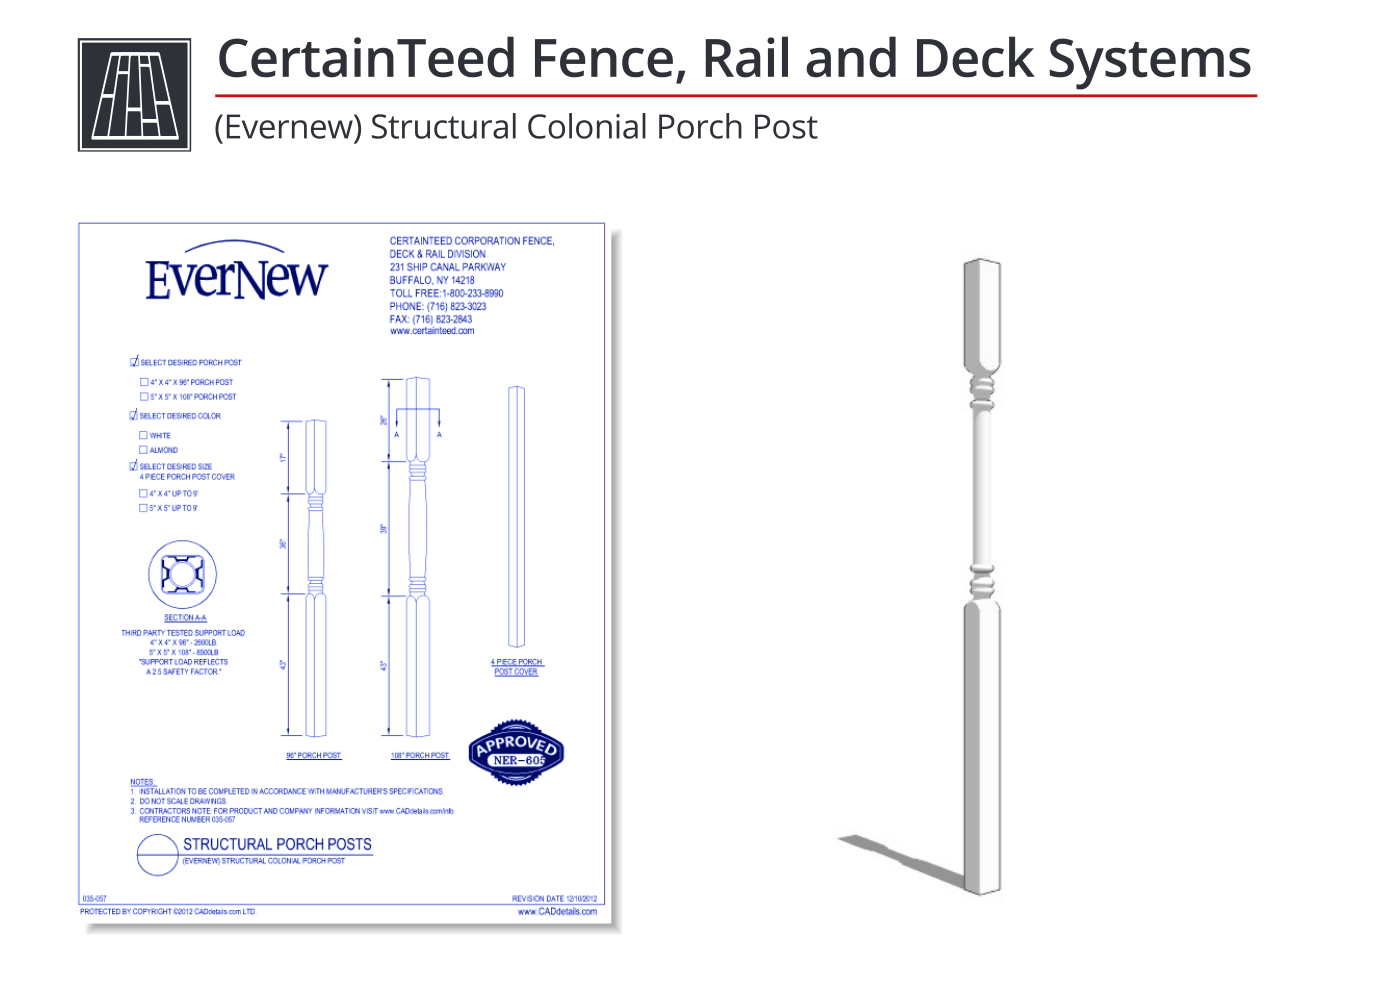 CertainTeed-Structural-Colonial-Porch-Post-CADdrawing.png